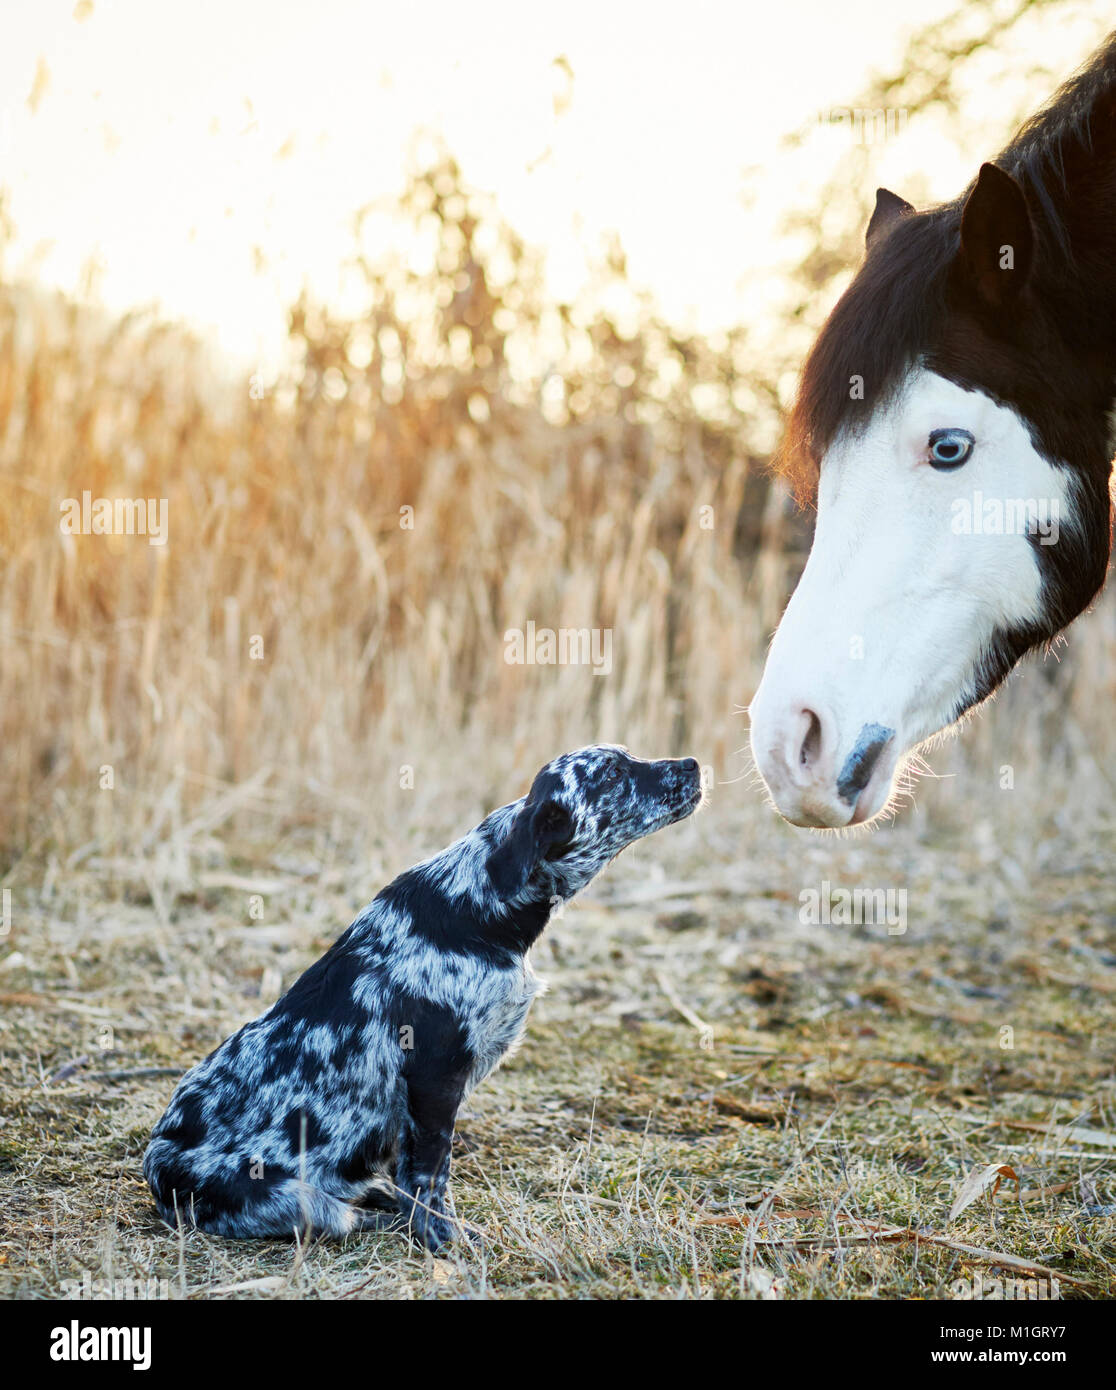 Animal friendship: Pintabian and young mixed-breed dog interacting. Germany - Stock Image